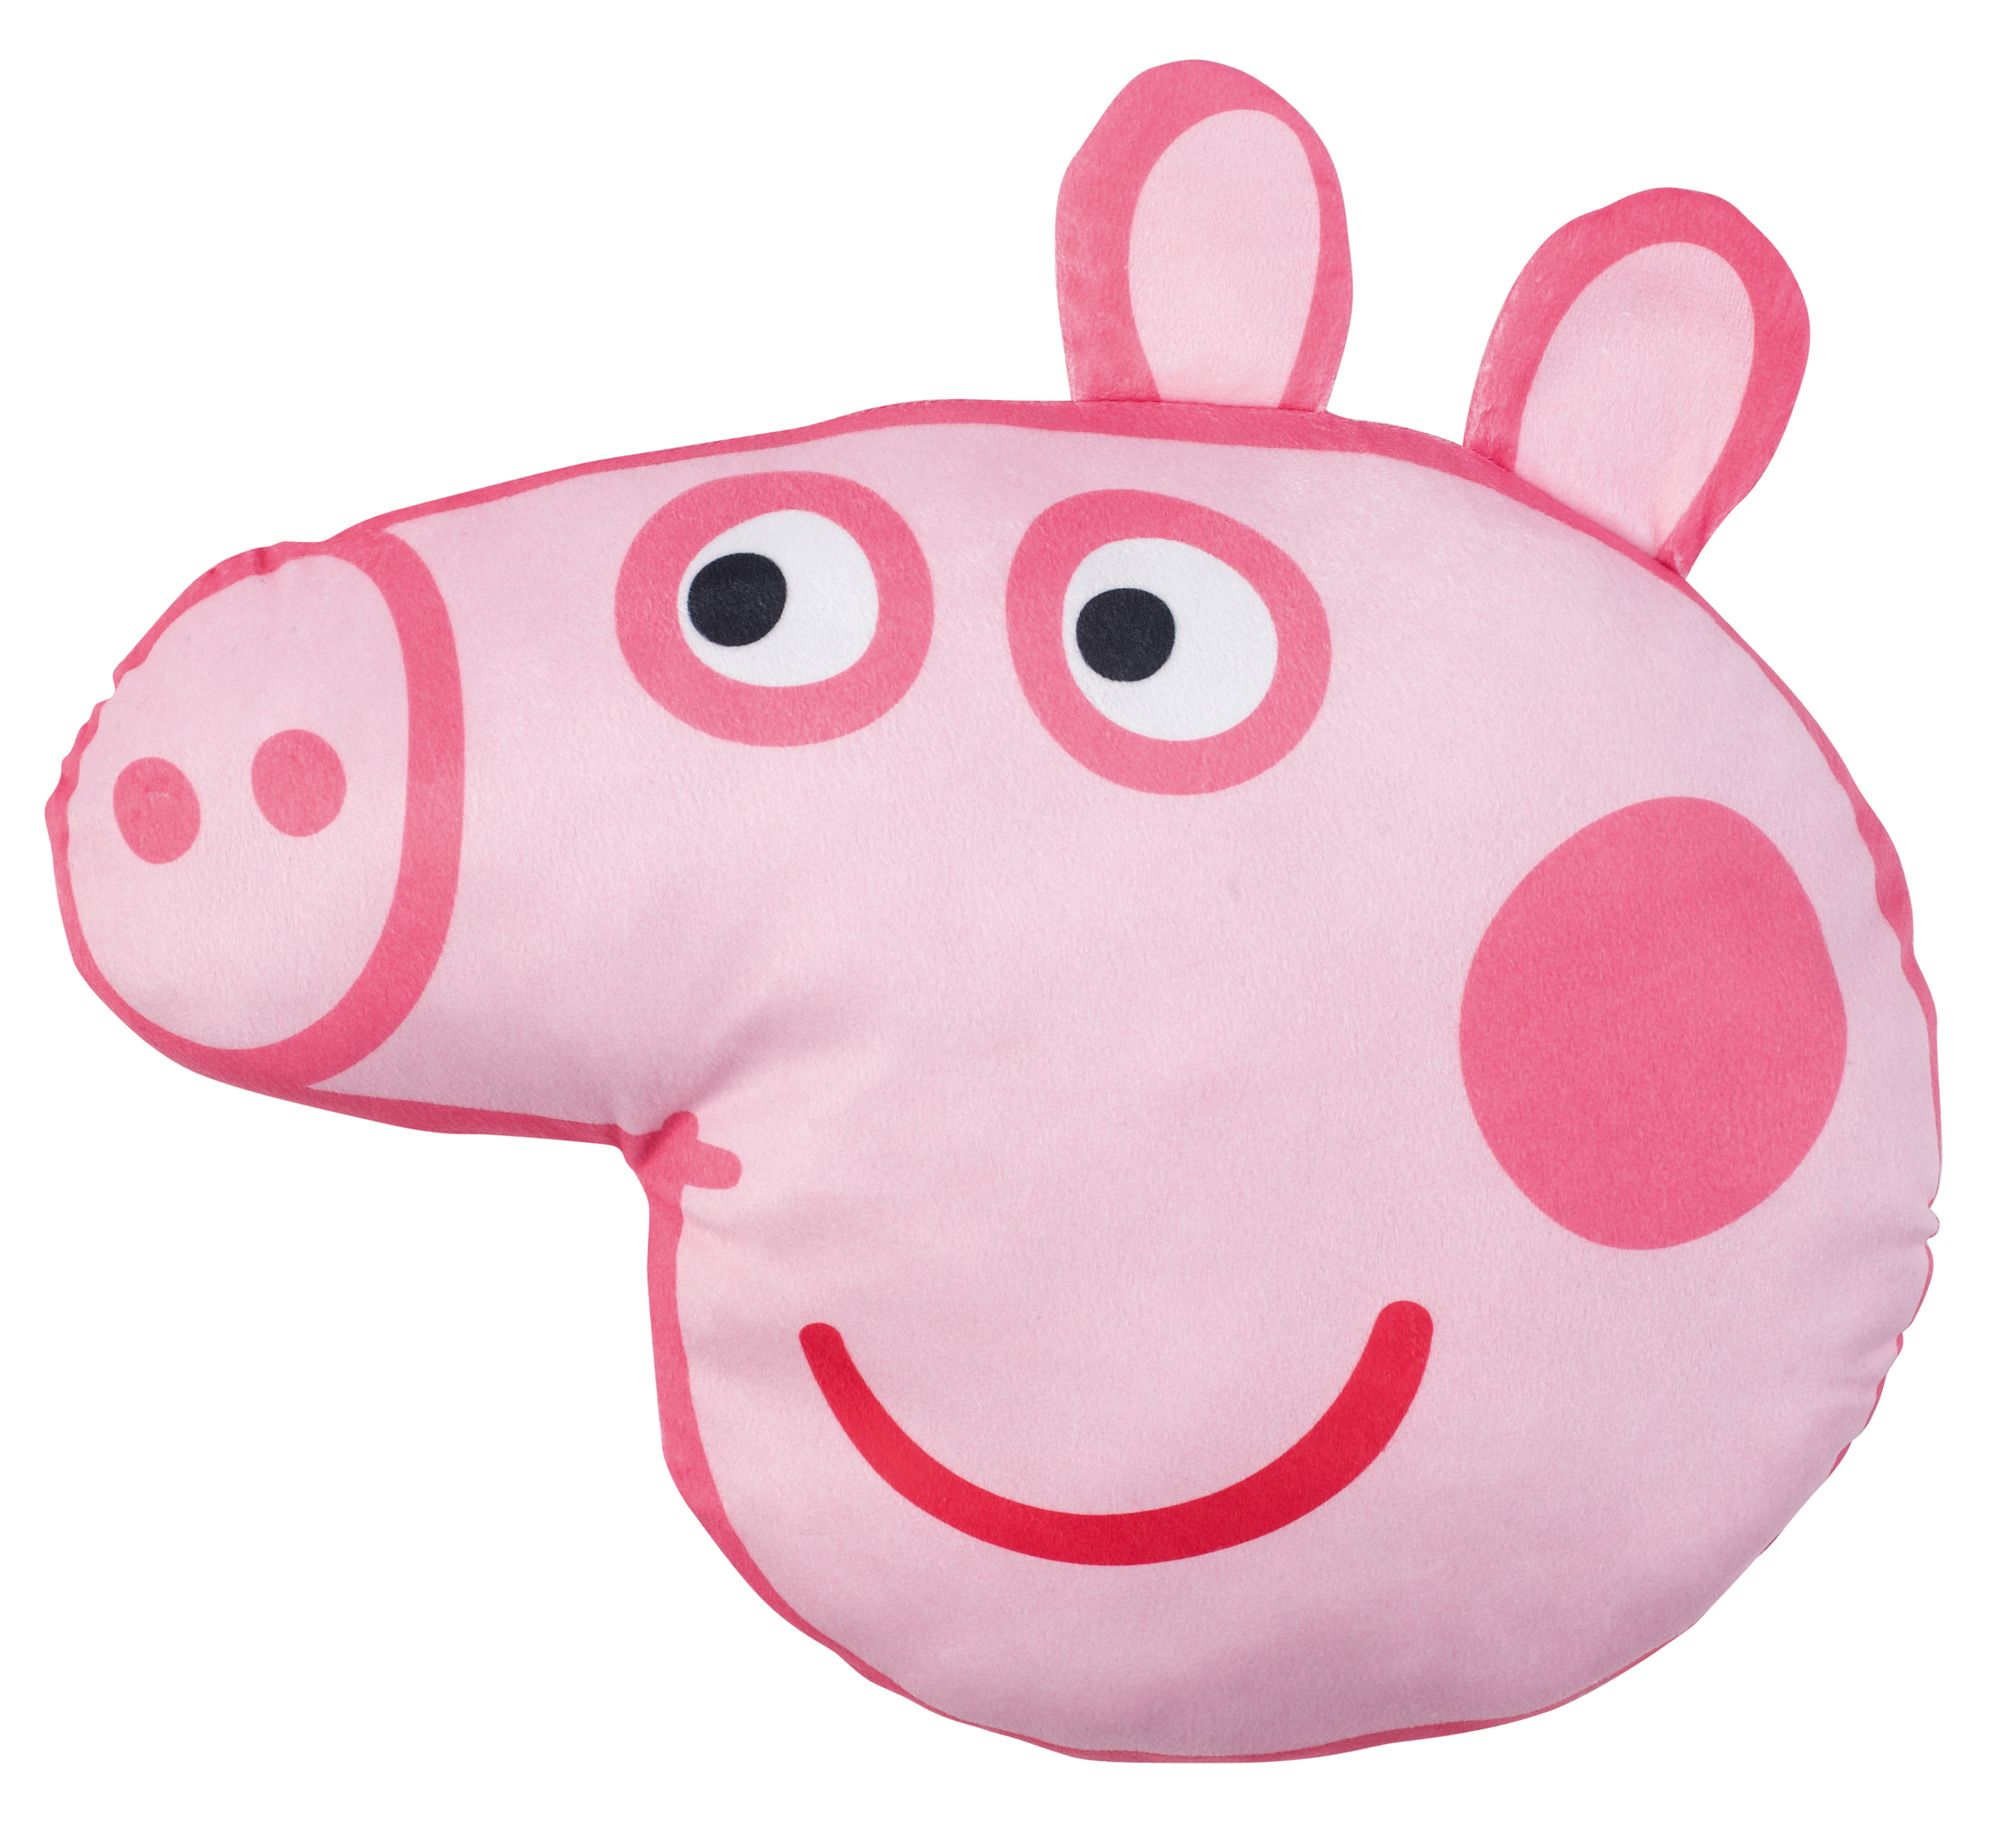 Peppa Pig Peppa Pig Head Pink Amp White Cushion